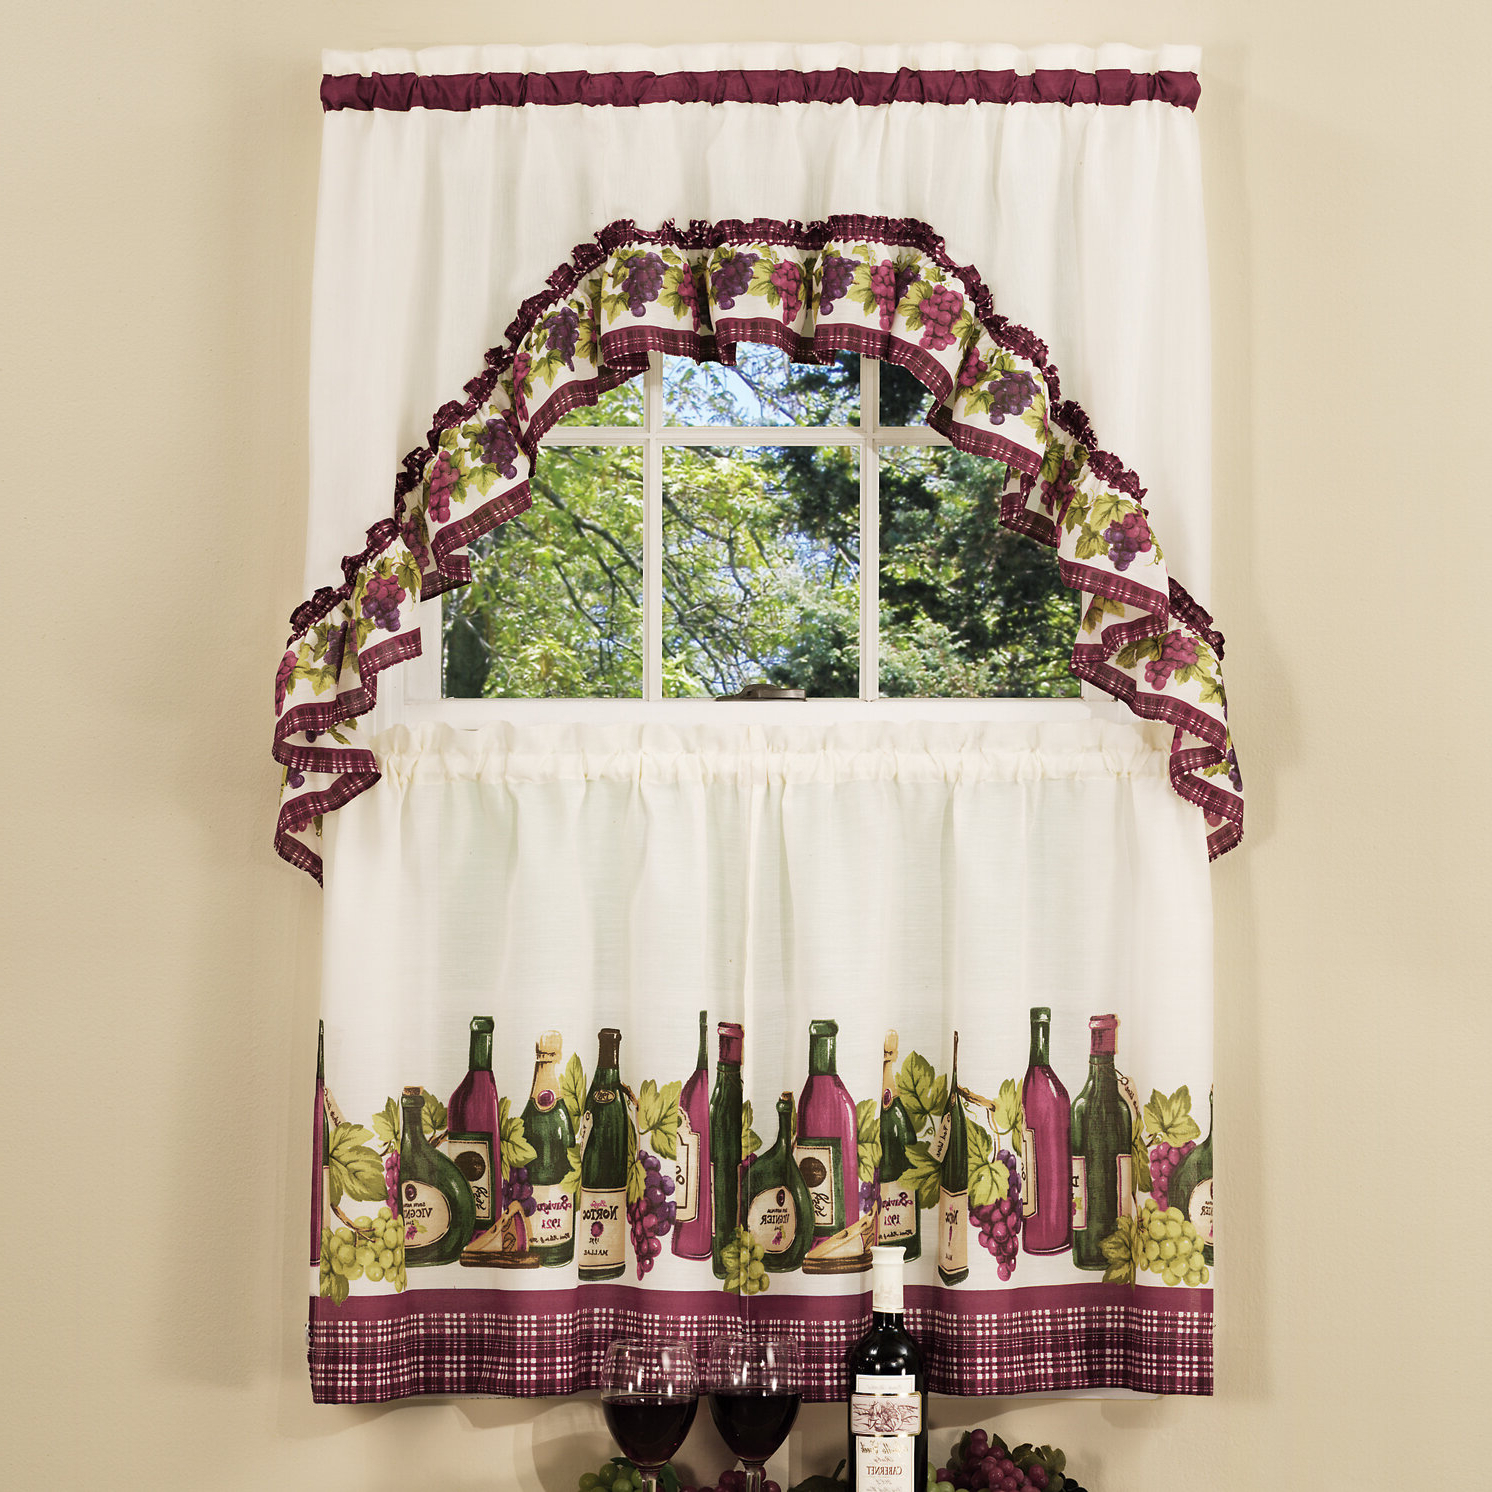 "Widely Used Chardonnay 57"" Kitchen Curtain In Window Curtains Sets With Colorful Marketplace Vegetable And Sunflower Print (View 10 of 20)"